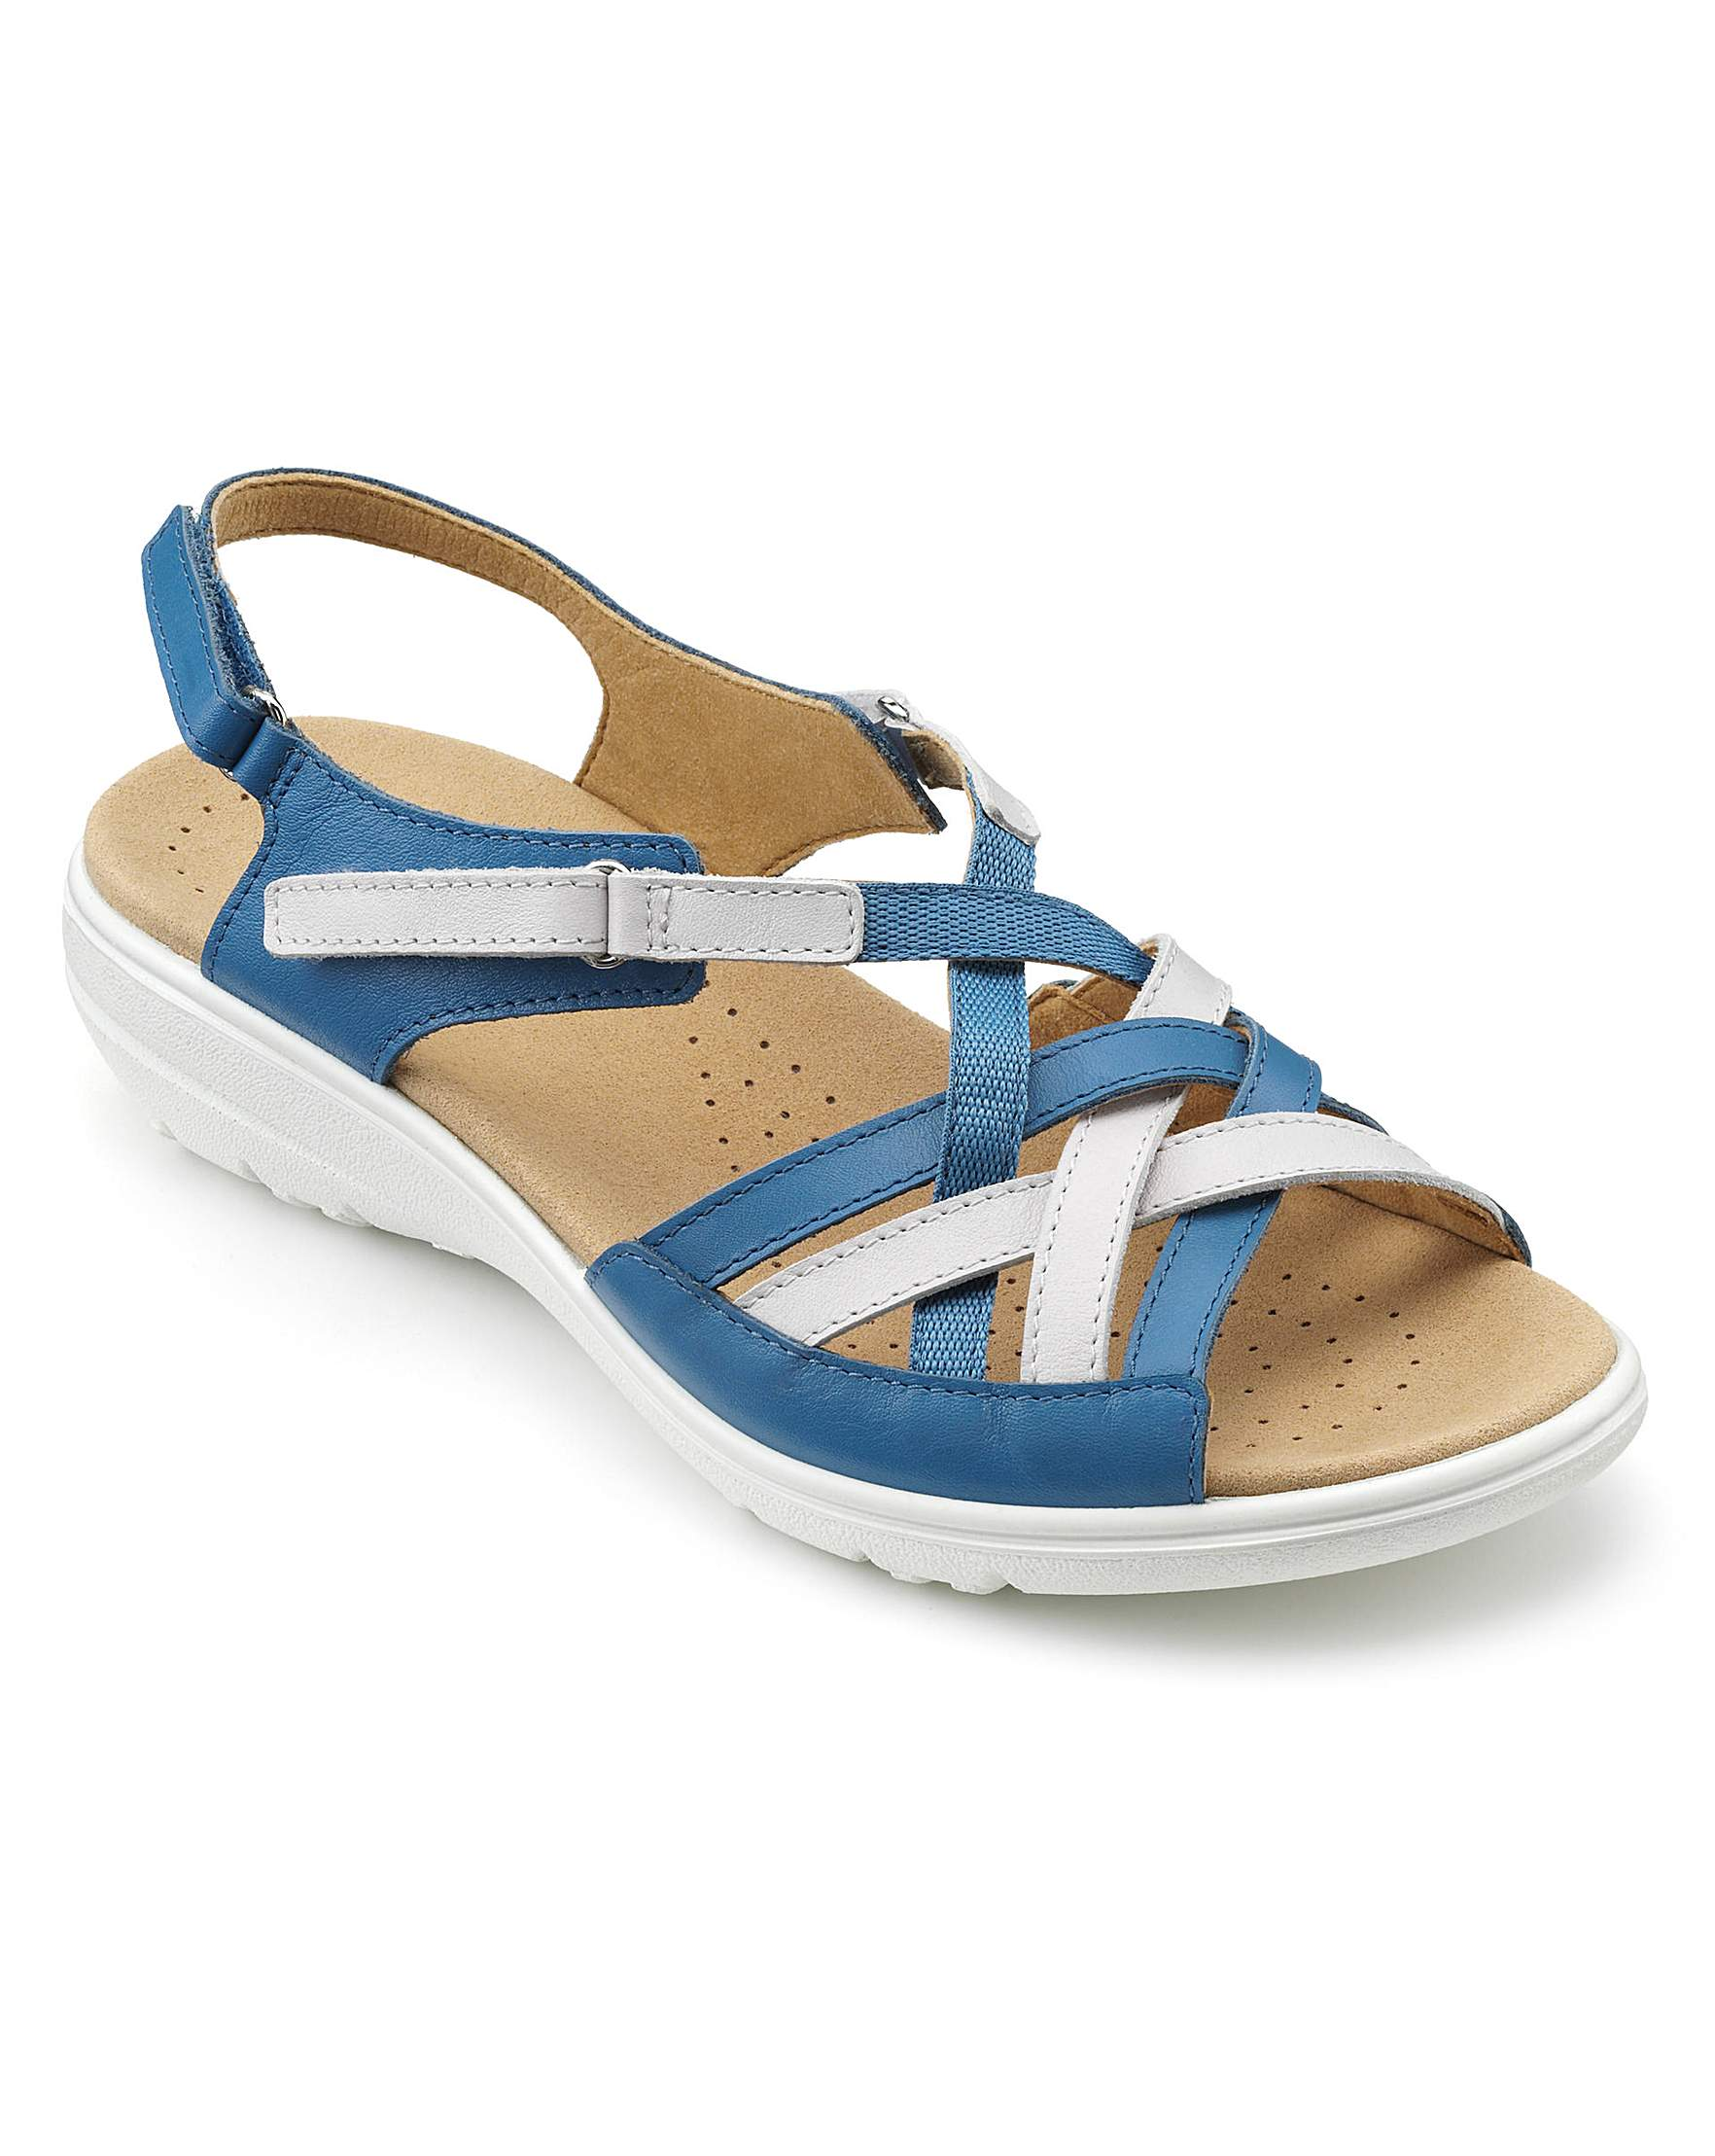 baa24c744de Hotter Maisie Wide Fit Sandal